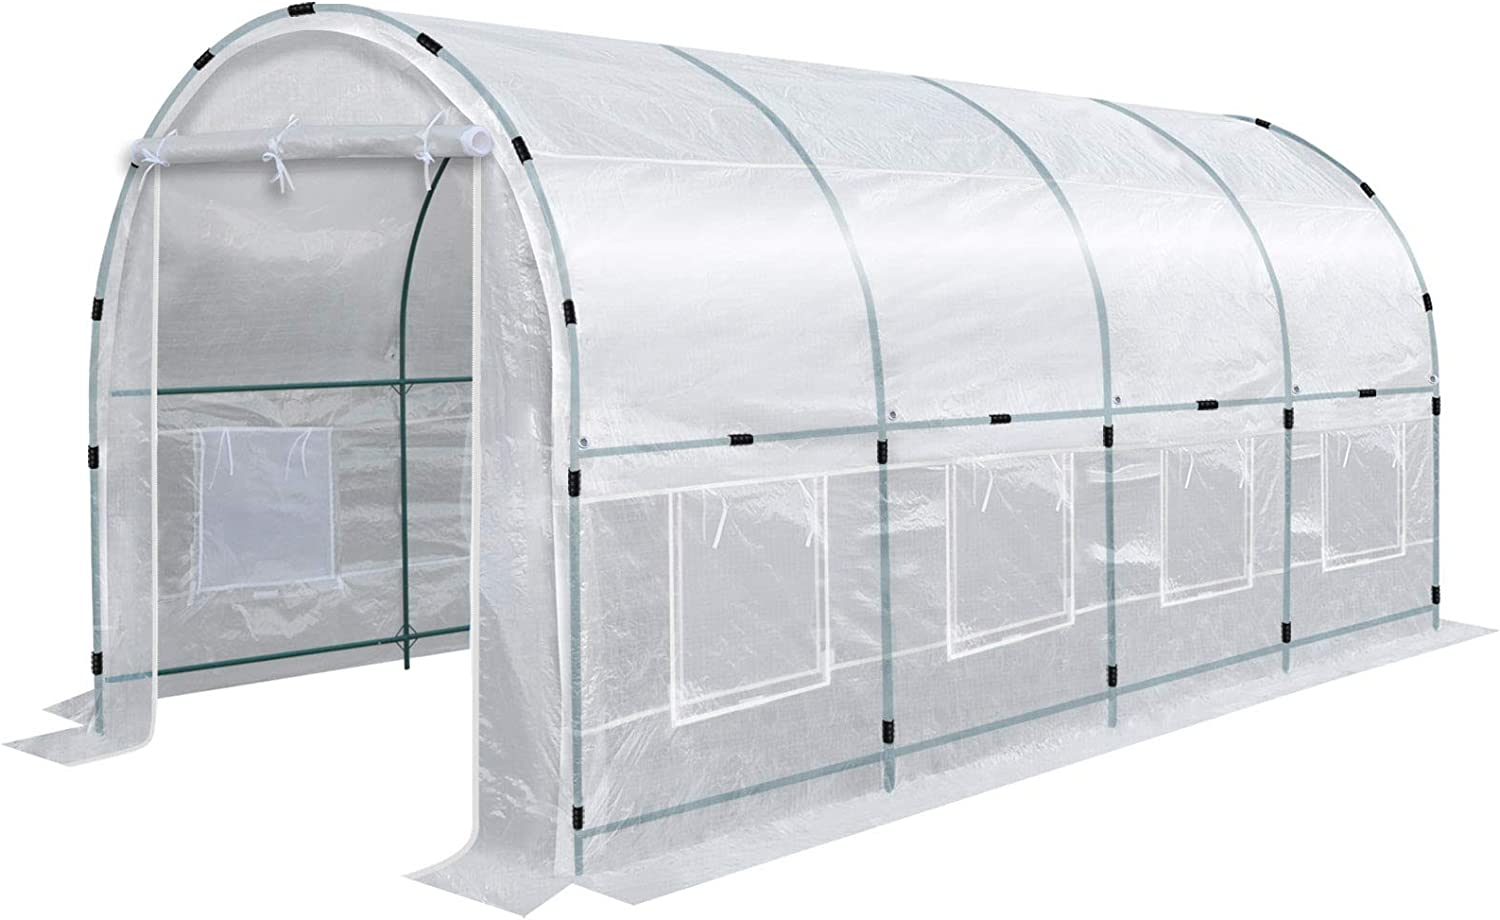 Cash special price Strong New Shipping Free Shipping Camel Large Walk-in Plants Garden Greenhouse Gre Portable